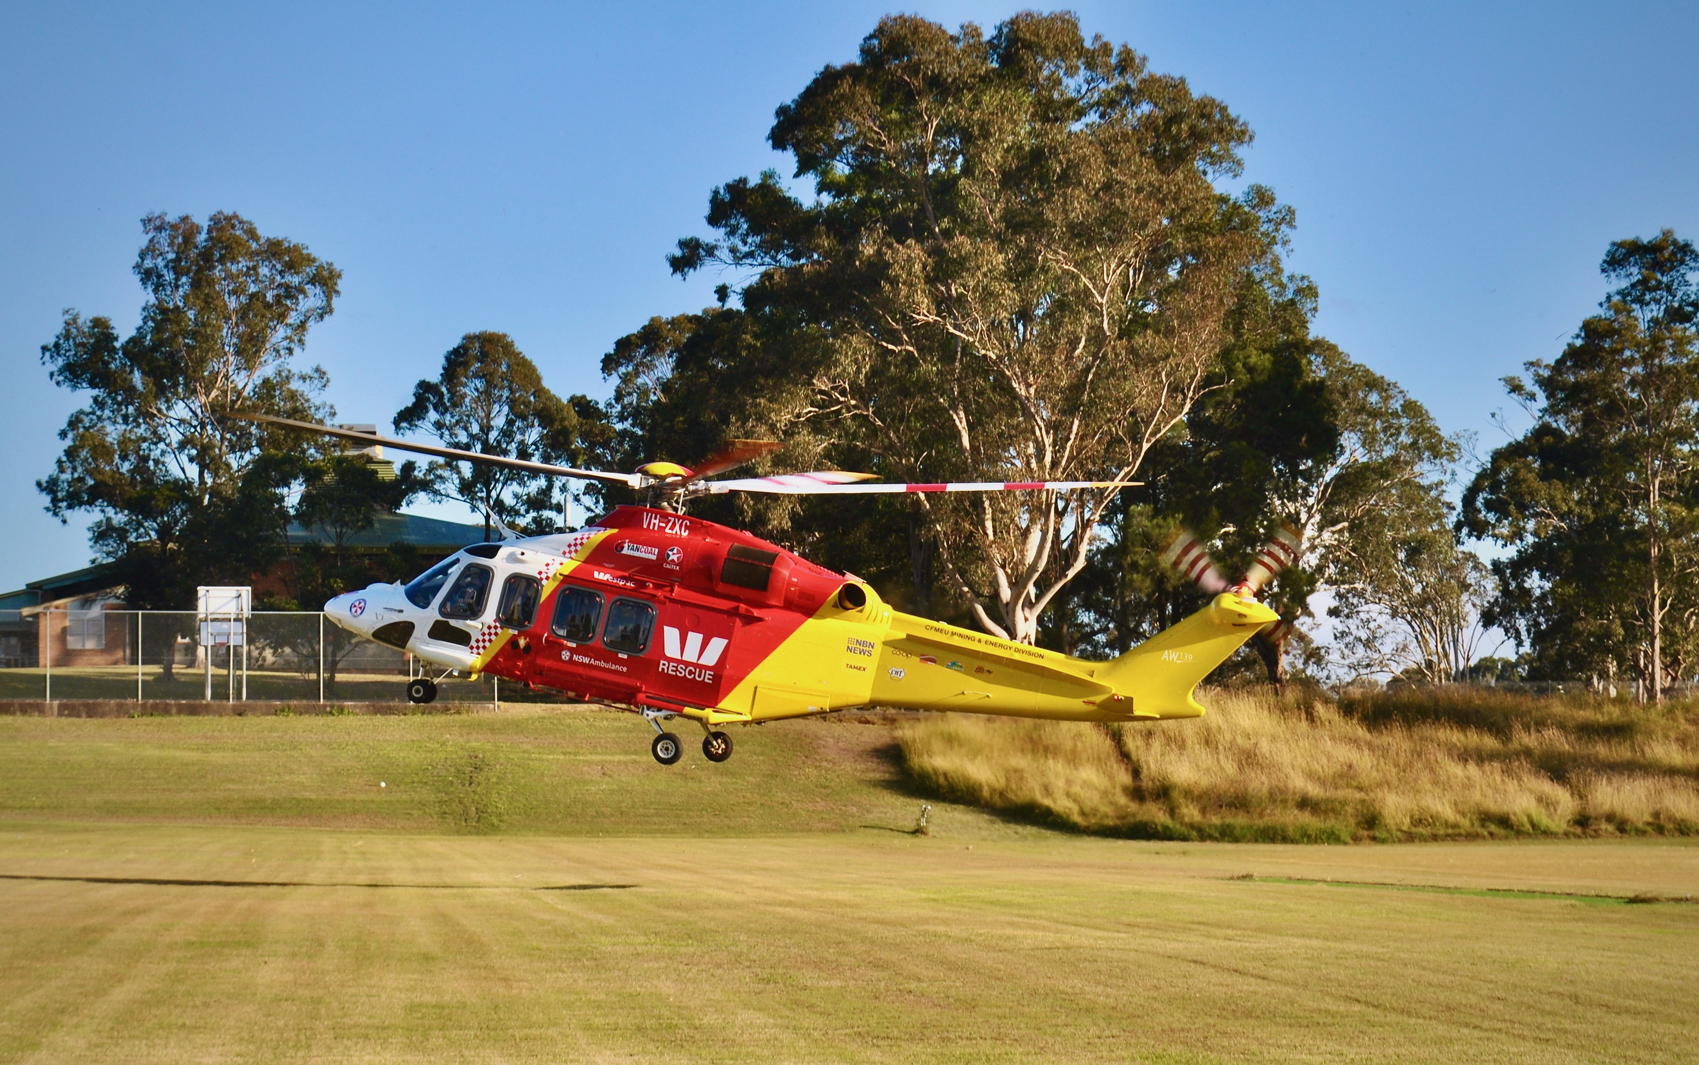 011 Westpac Emergency Helicopter & Gloucester High School -  Christian Collins (6yrs)